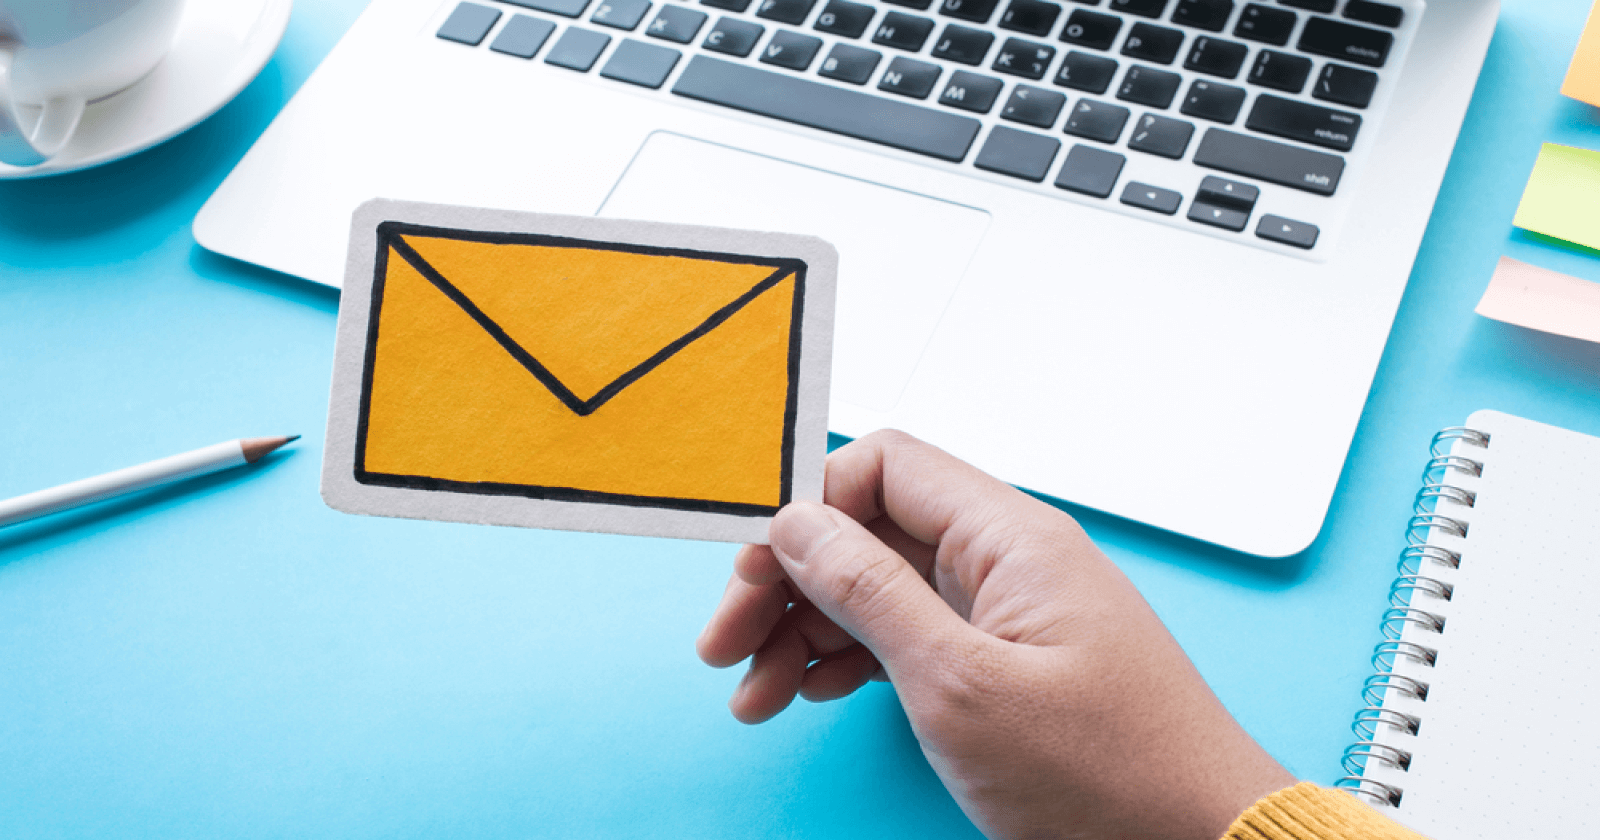 Why Email Marketing is Important in the midst of COVID-19